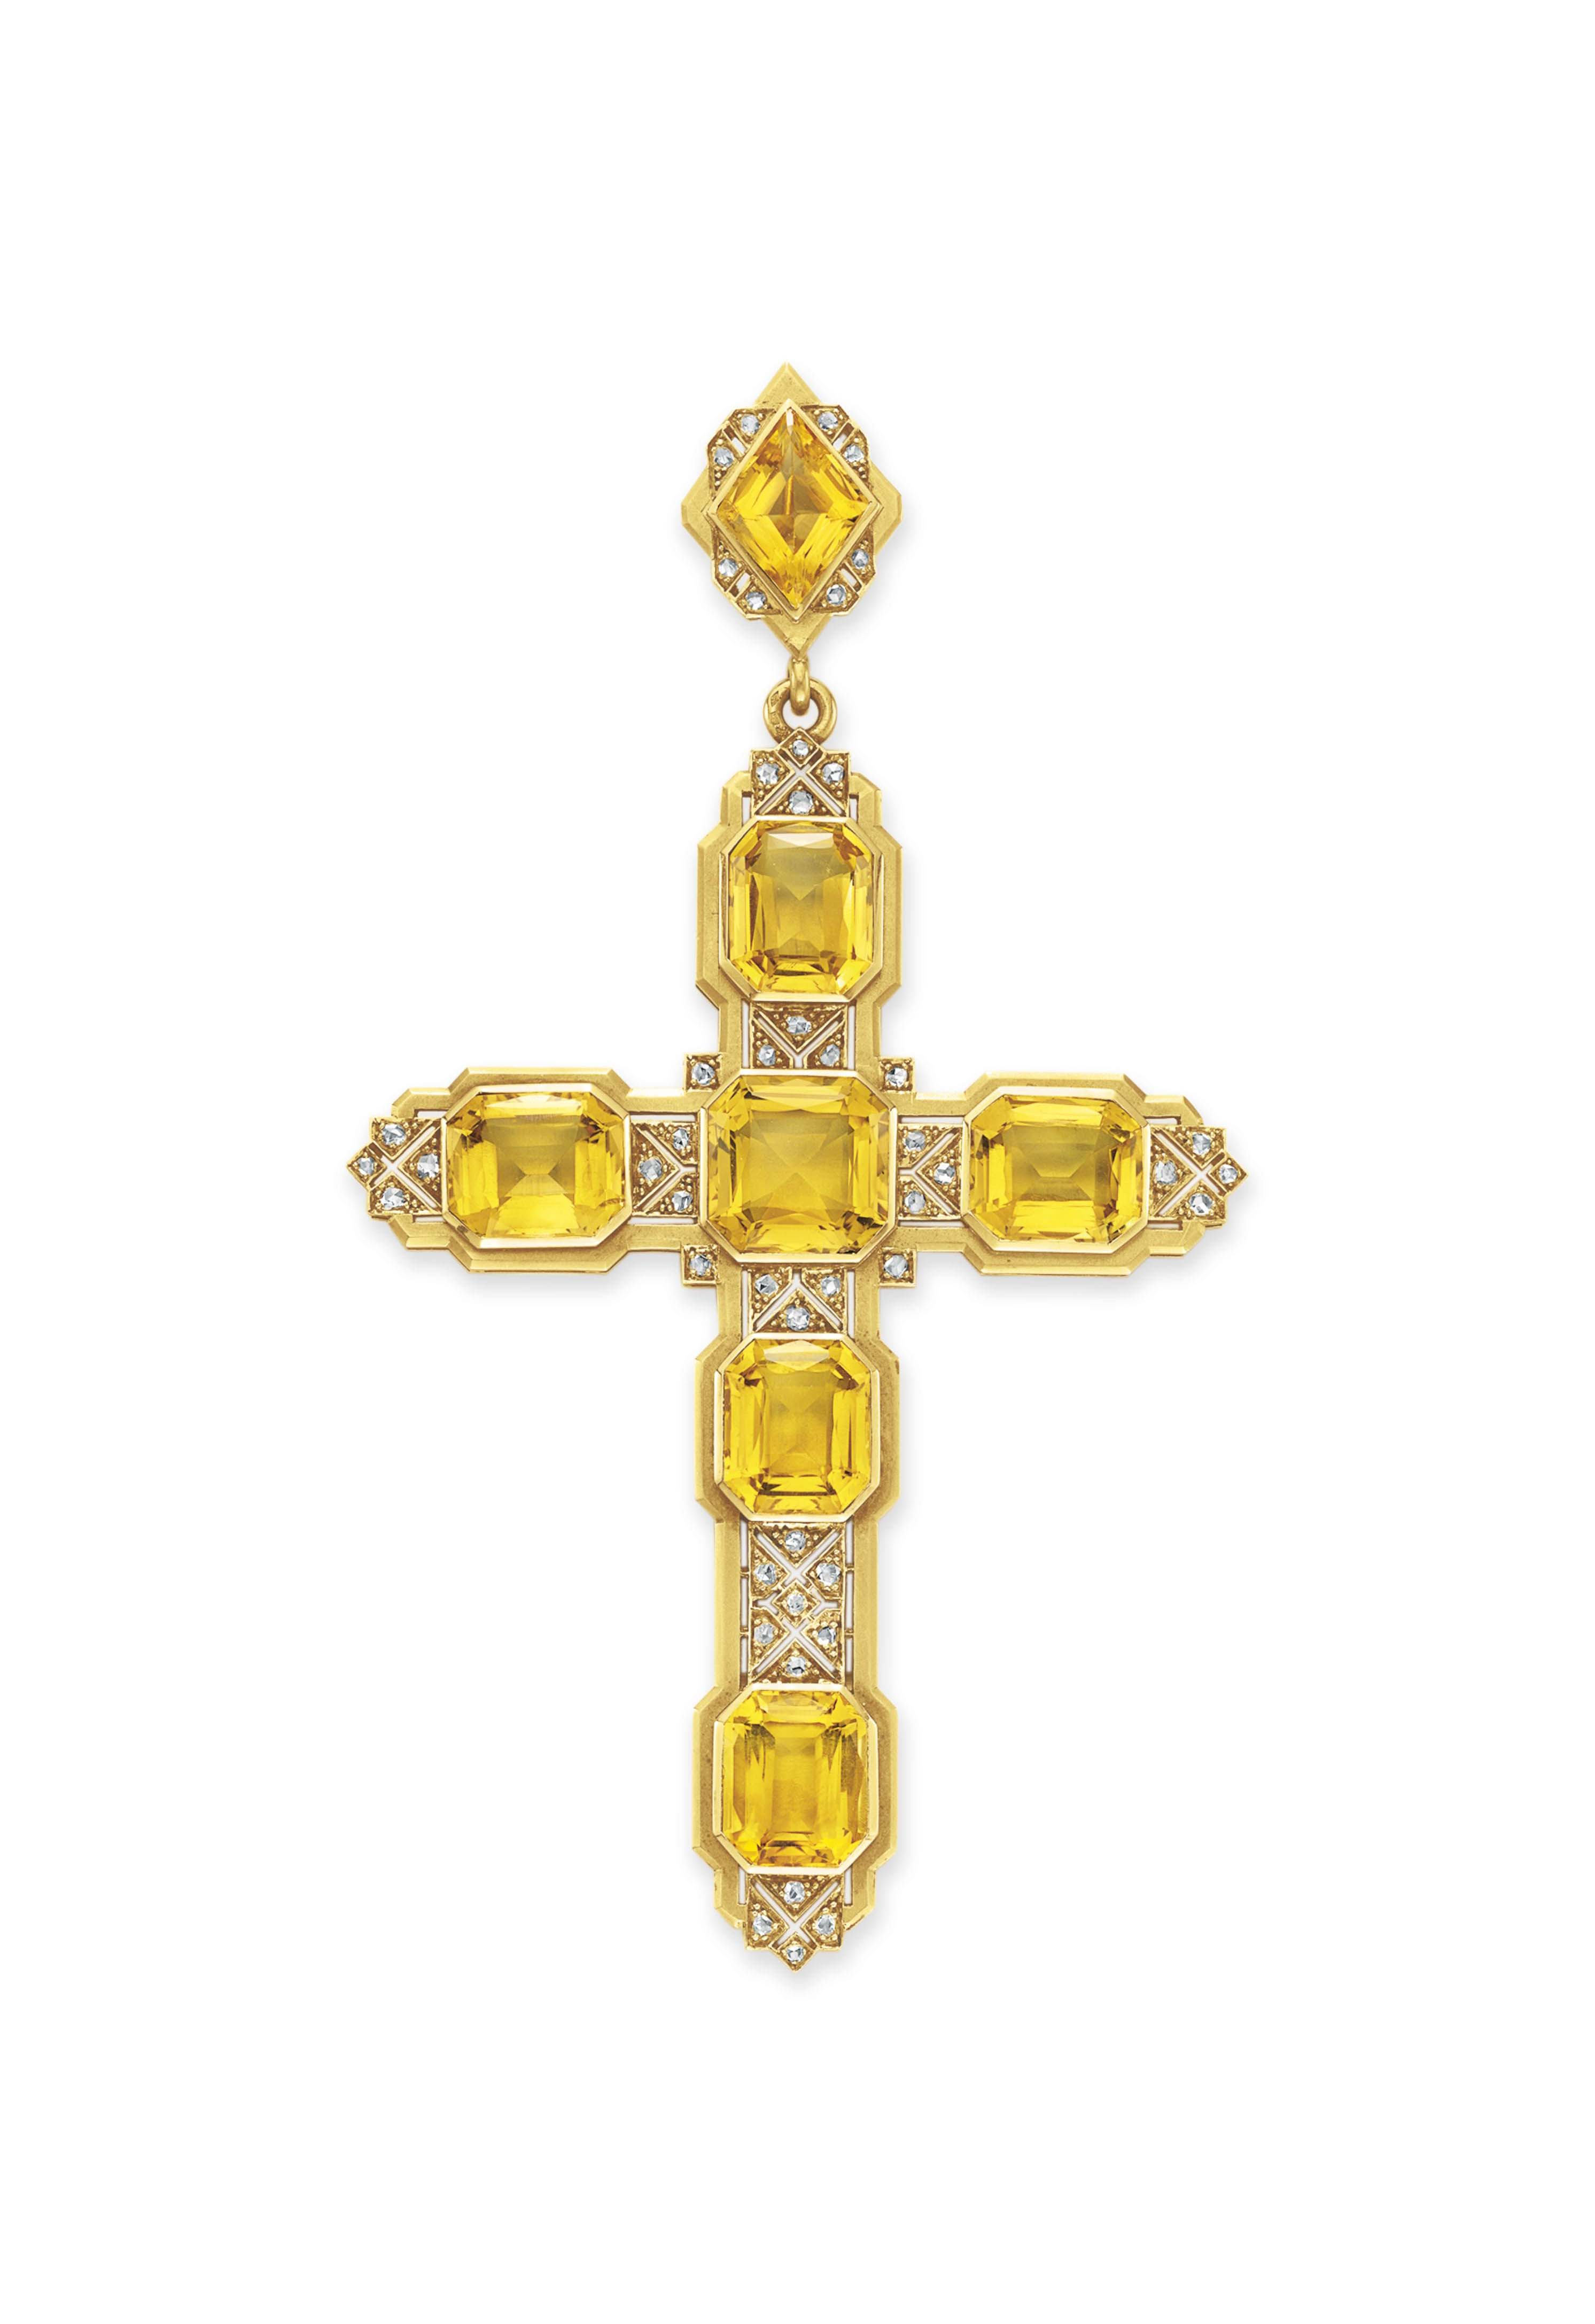 AN ANTIQUE CITRINE AND DIAMOND CROSS PENDANT, BY MELLERIO